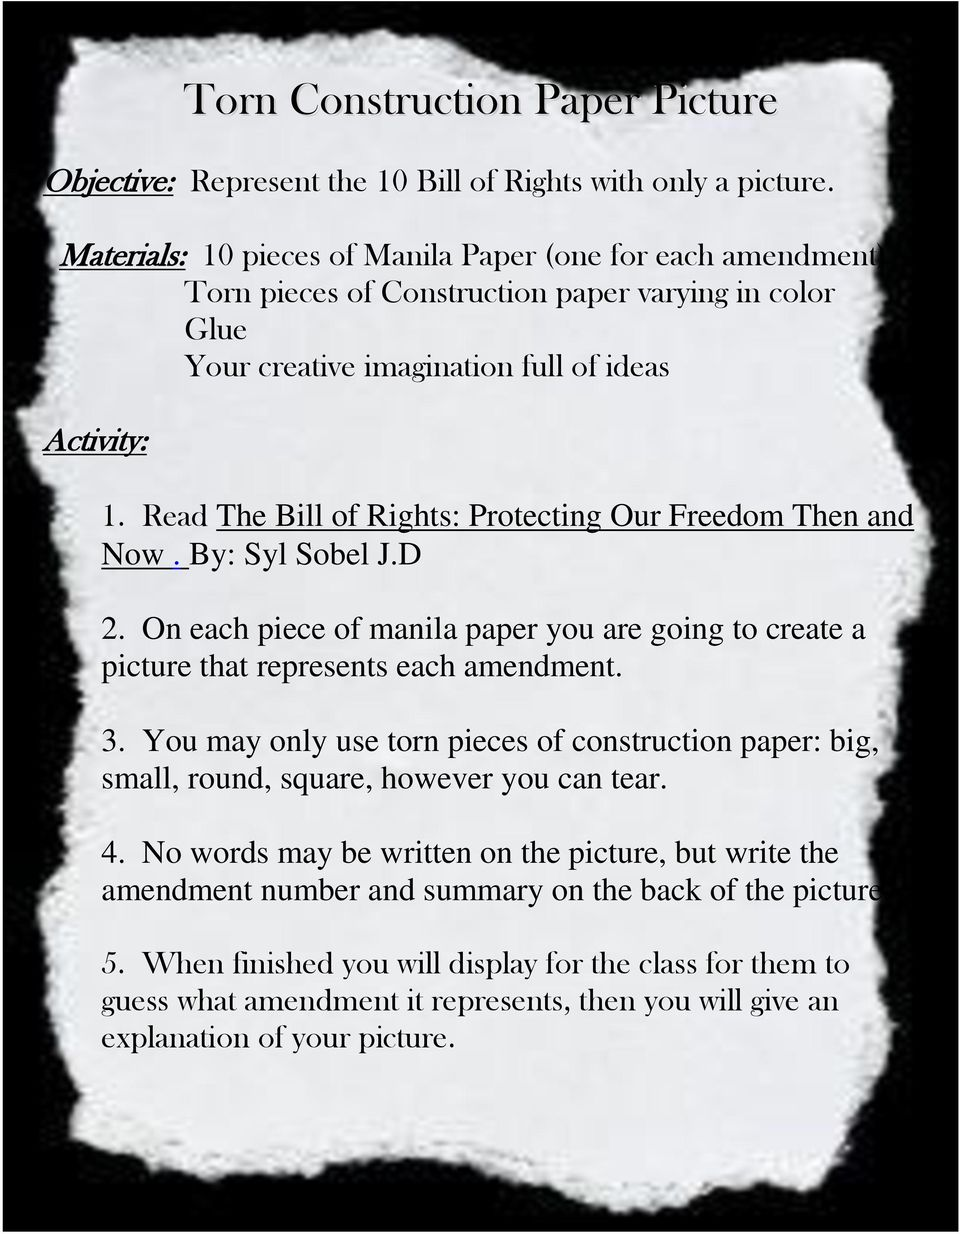 Read The Bill of Rights: Protecting Our Freedom Then and Now. By: Syl Sobel J.D 2. On each piece of manila paper you are going to create a picture that represents each amendment. 3.